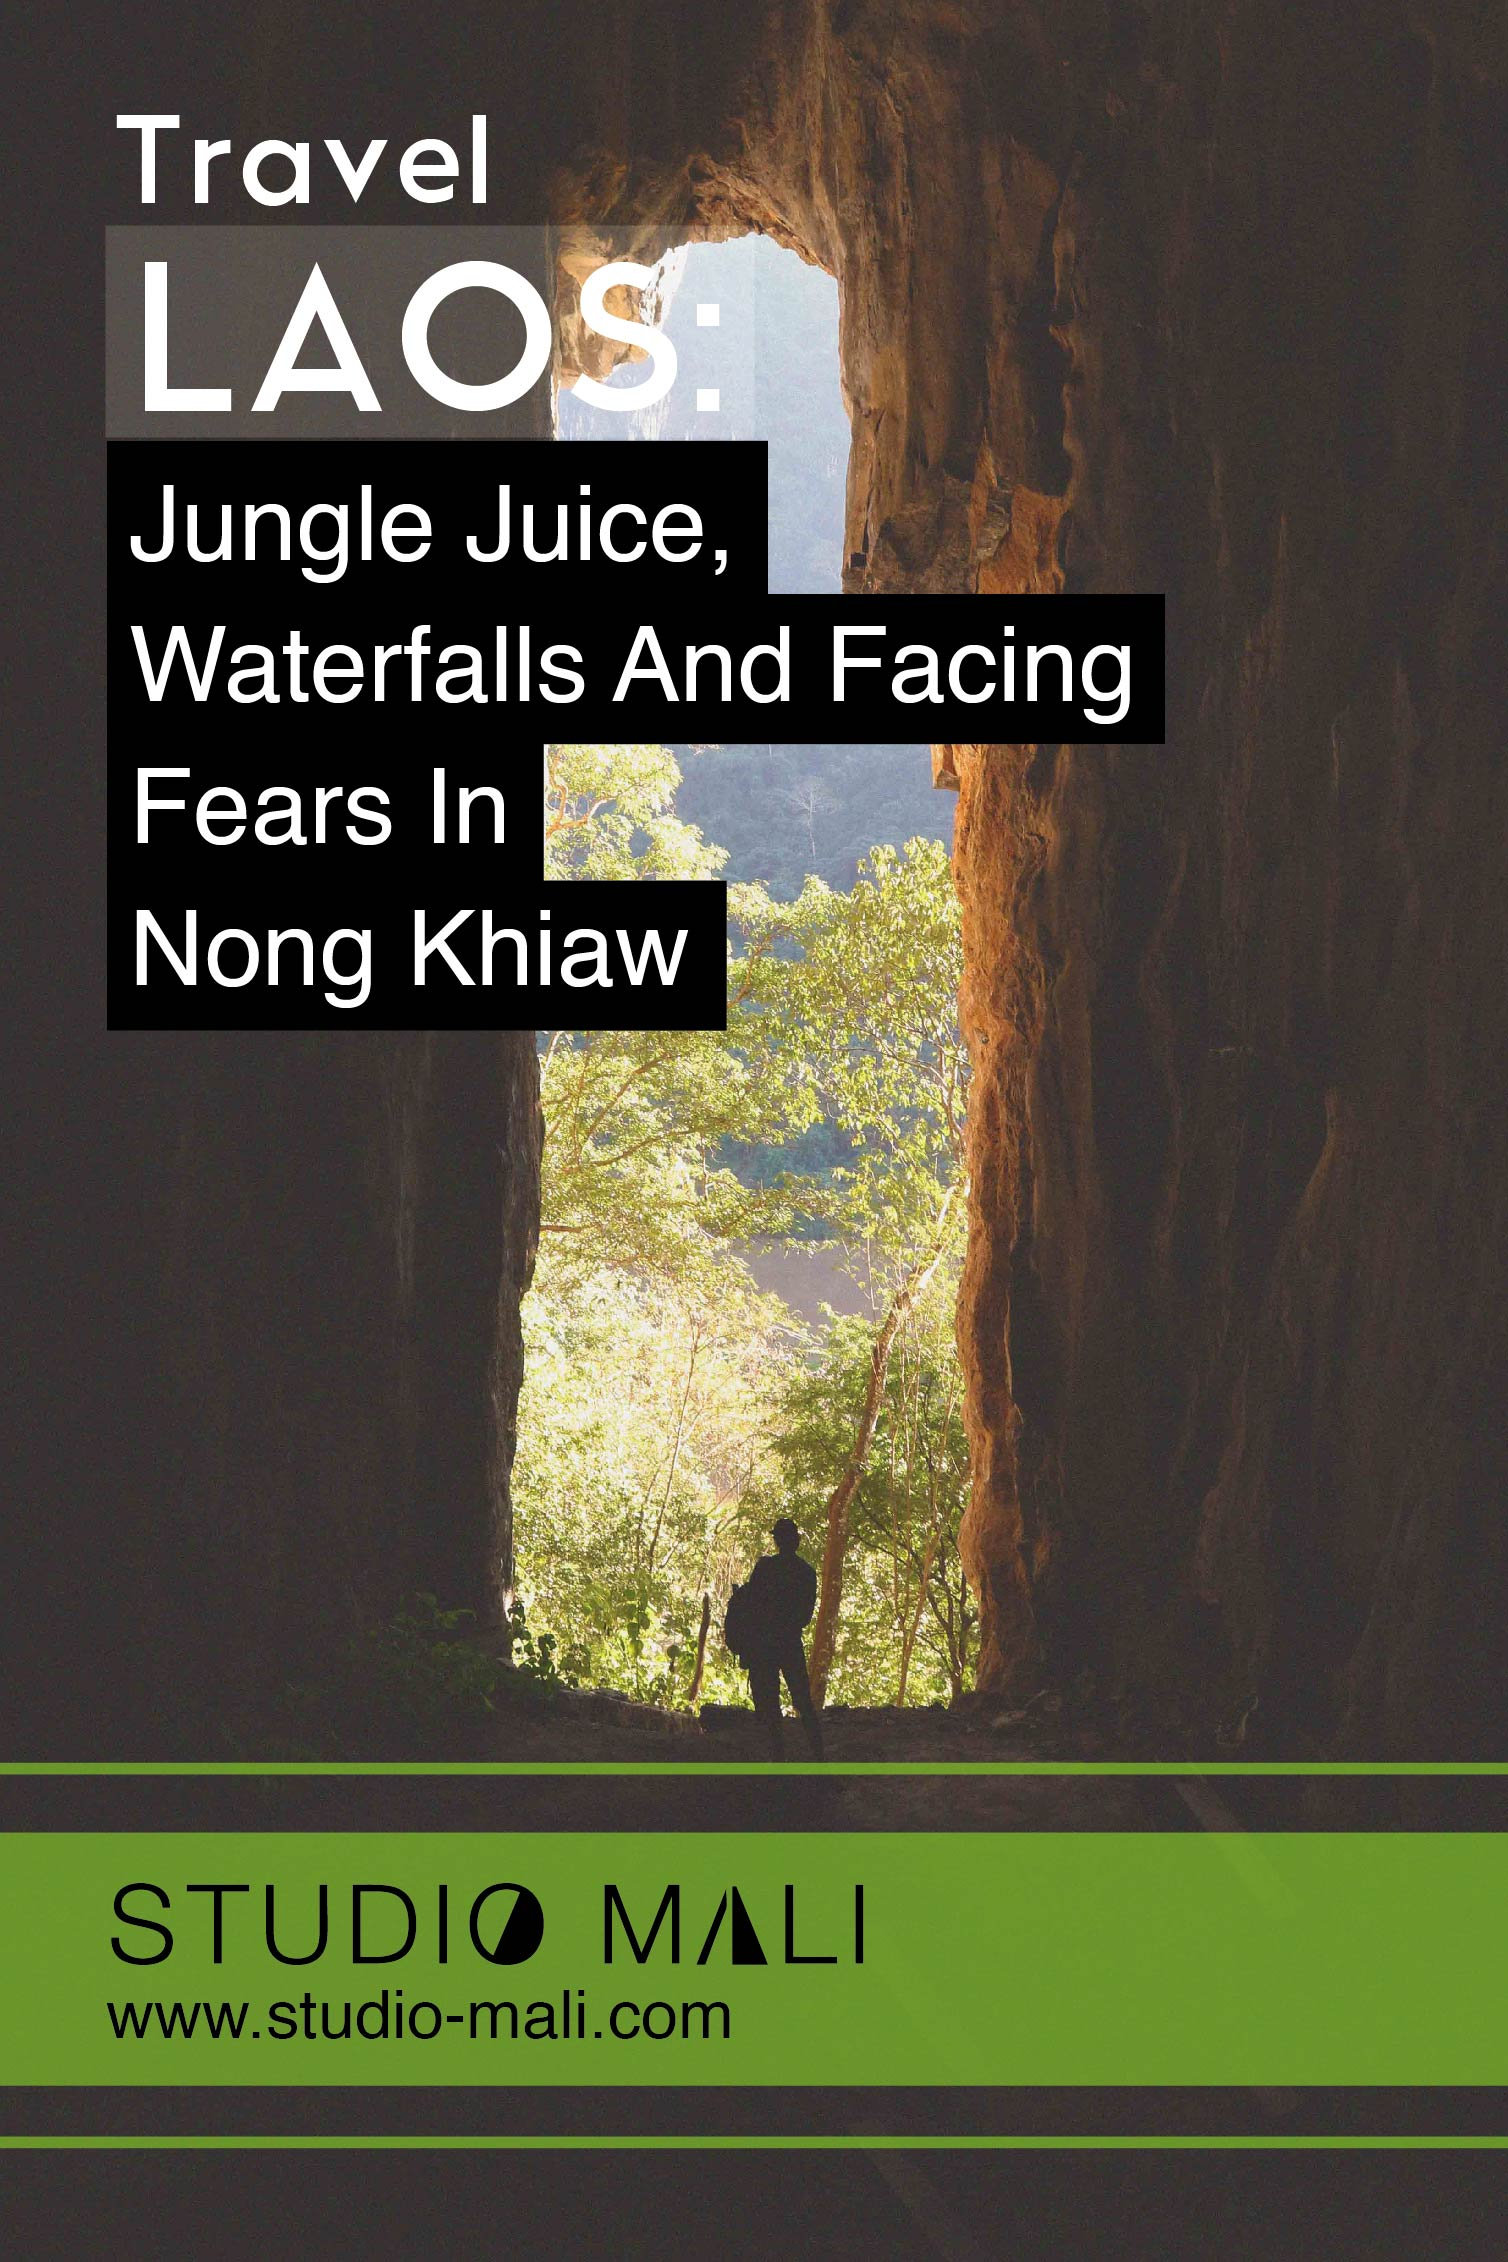 Laos - Jungle Juice, Waterfalls And Facing Fears In Nong Khiaw, By Studio Mali-10.jpg